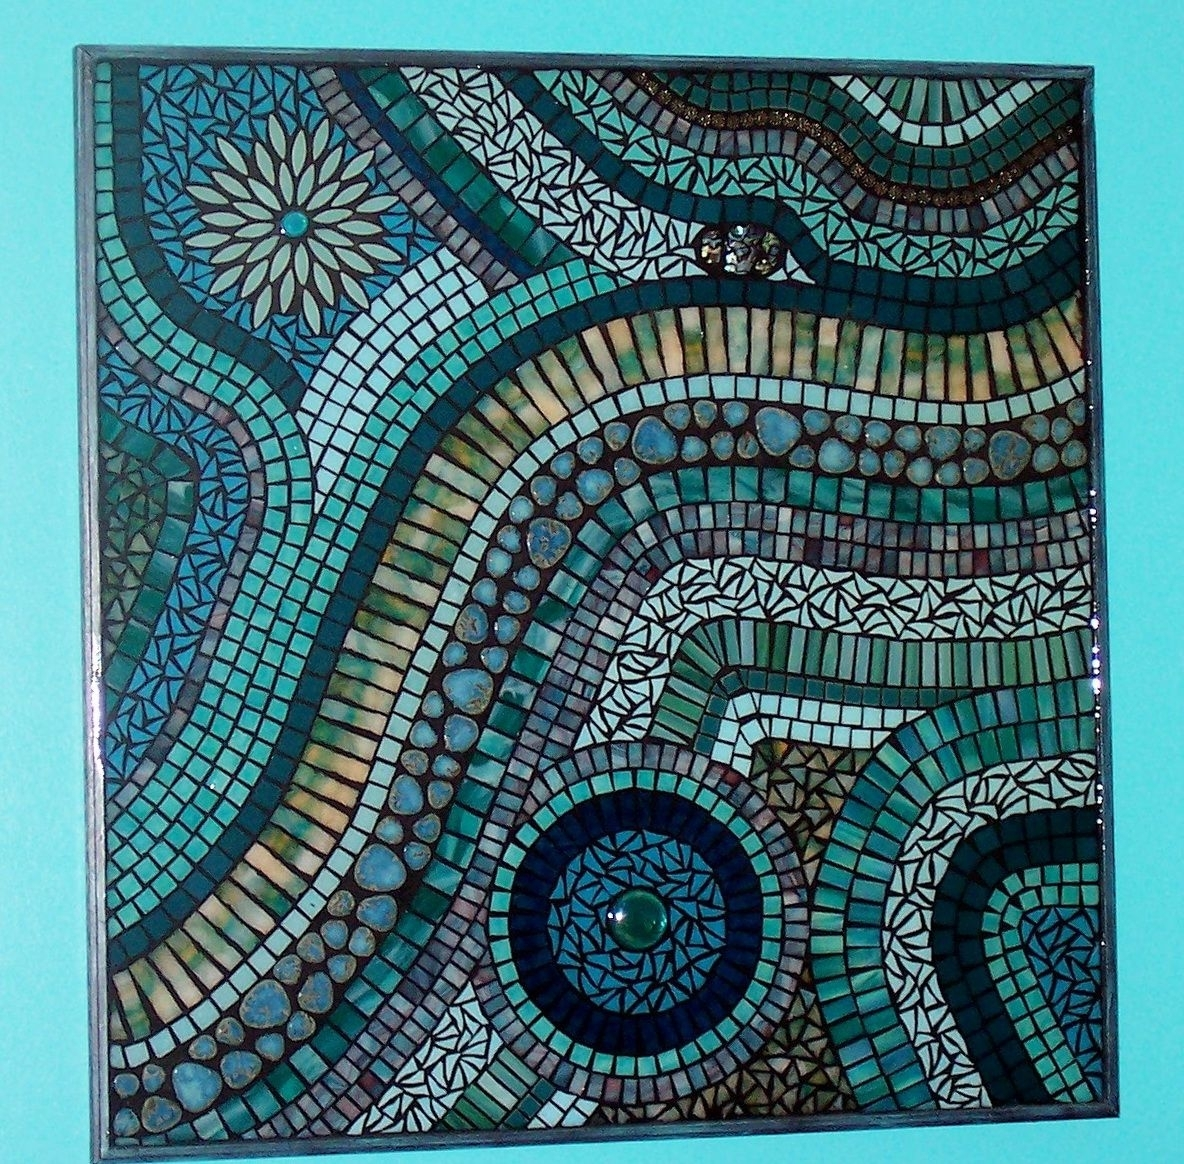 Mosaic Wall Art Diy | Mosaic | Pinterest | Mosaic Wall Art, Mosaic In Current Mosaic Wall Art (View 8 of 15)